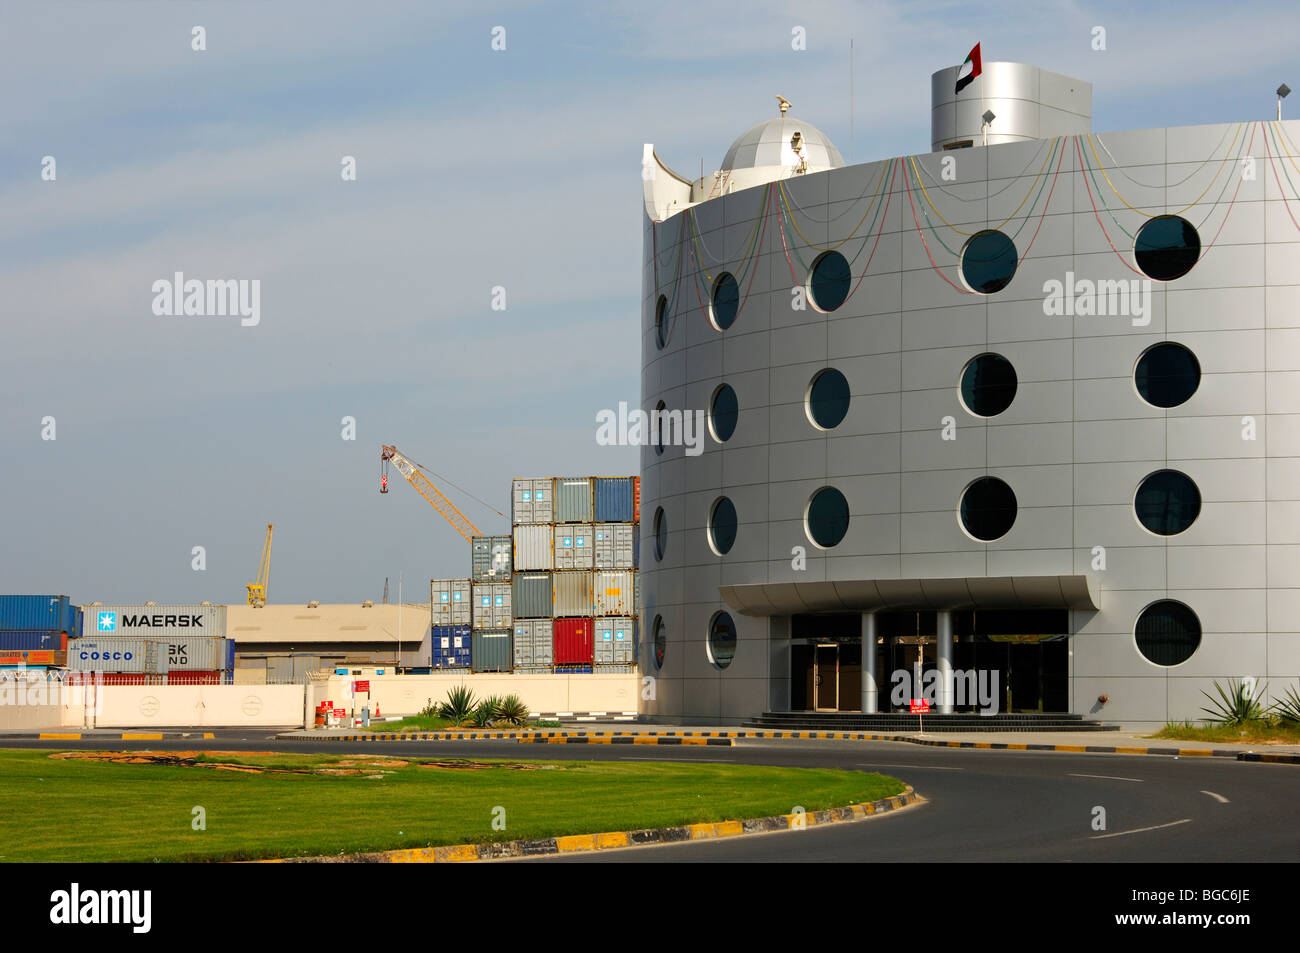 Building of the port and customs authorities, Ajman, Emirate of Ajman, United Arab Emirates, Middle East Stock Photo